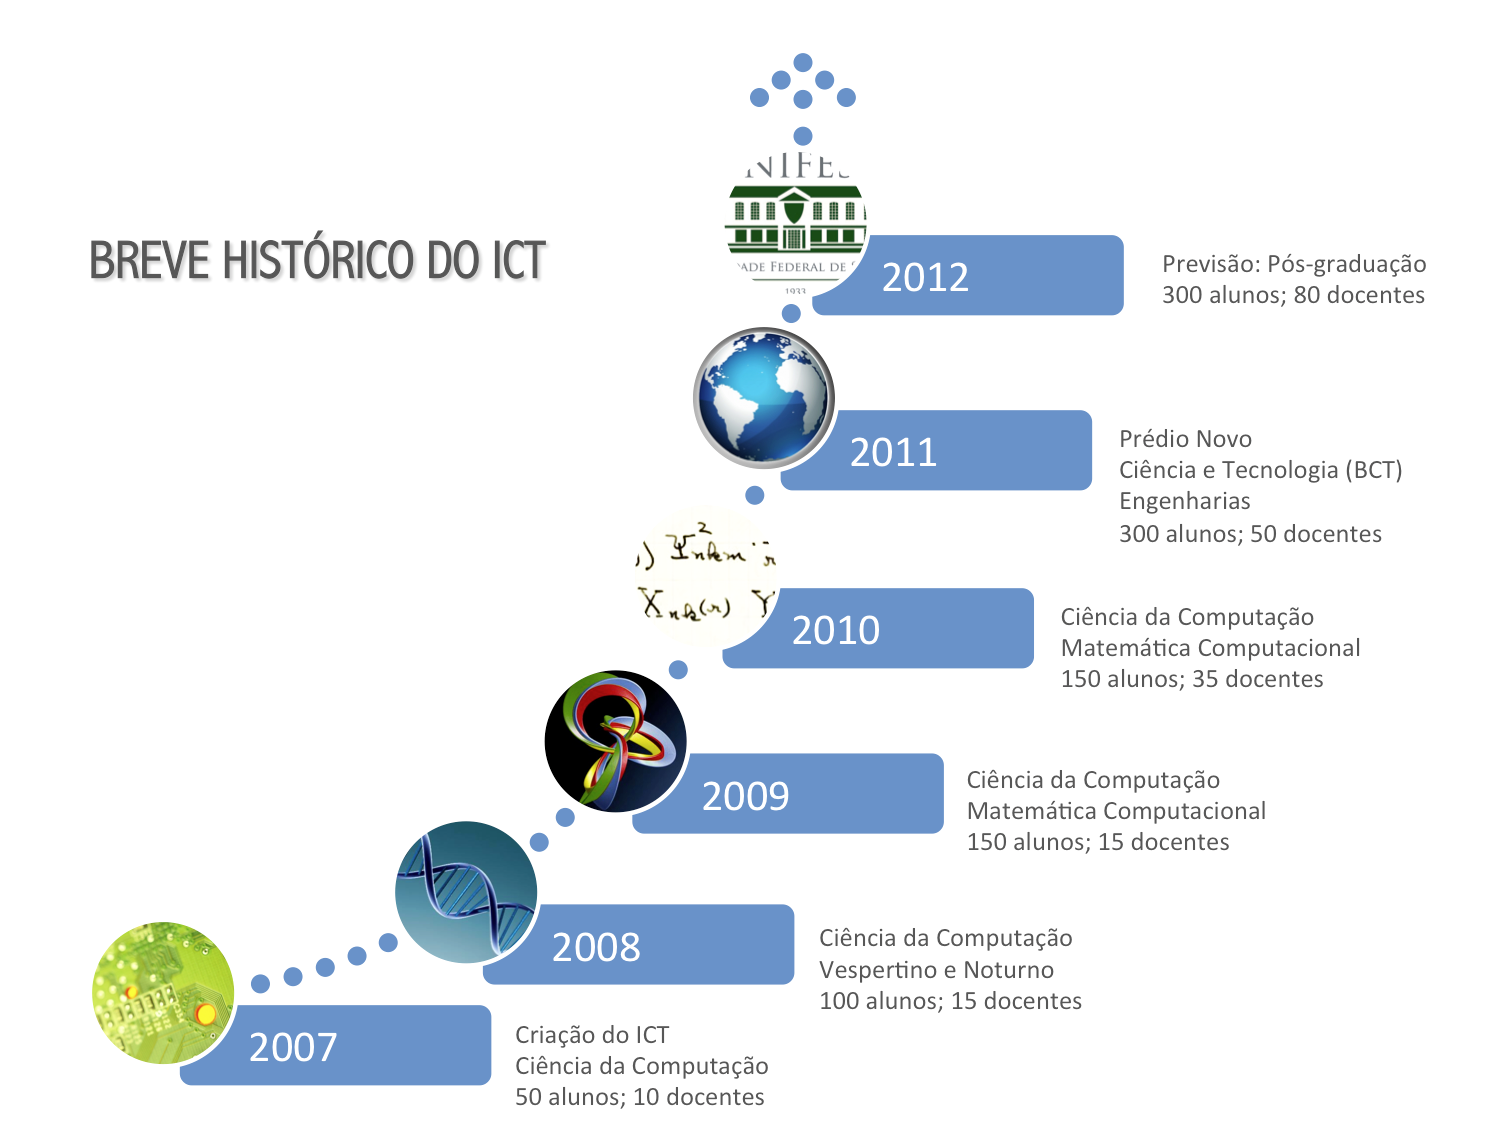 Breve histórico do ICT